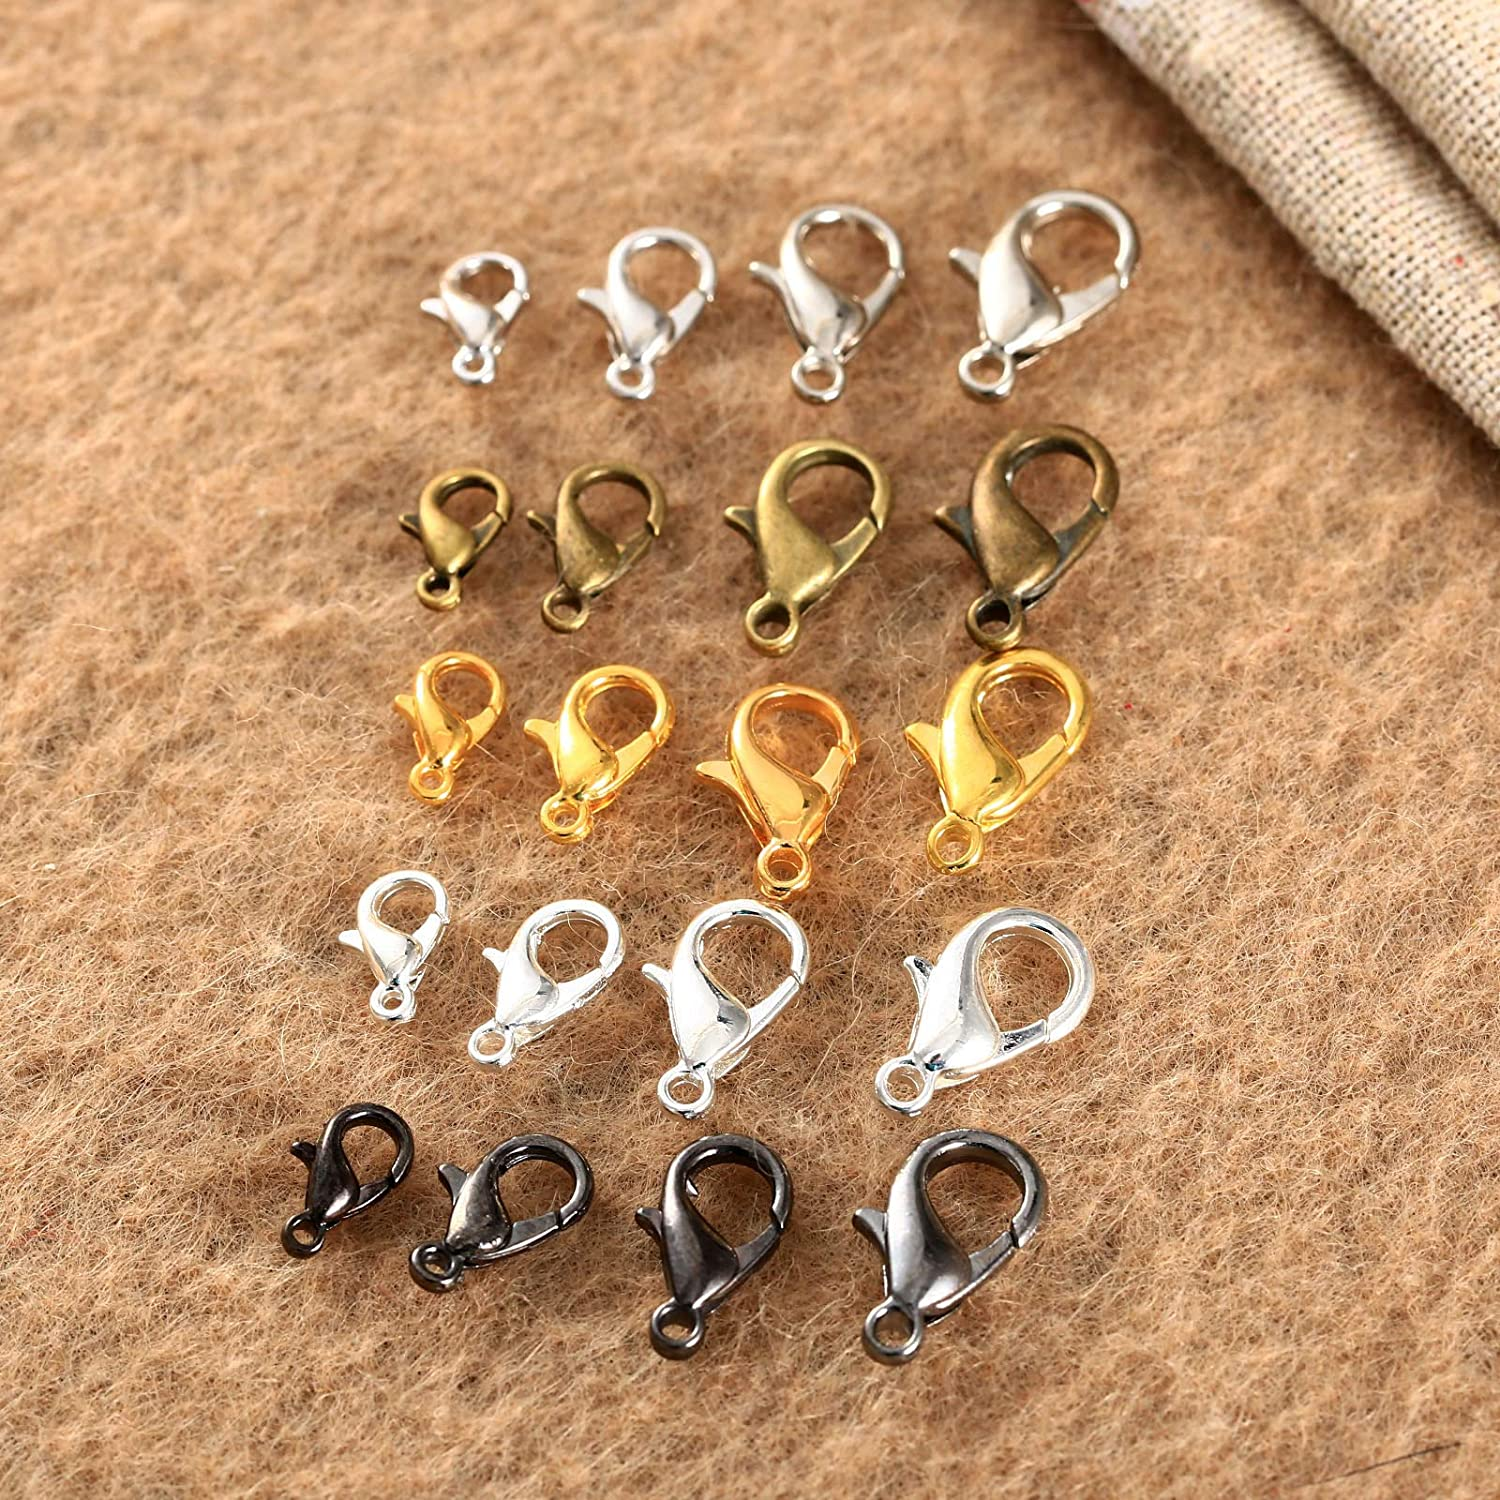 Silver 10mm Dophee 100Pcs DIY Craft Plated Jewelry Lobster Clasp Claw Buckle Hook Finding Necklace